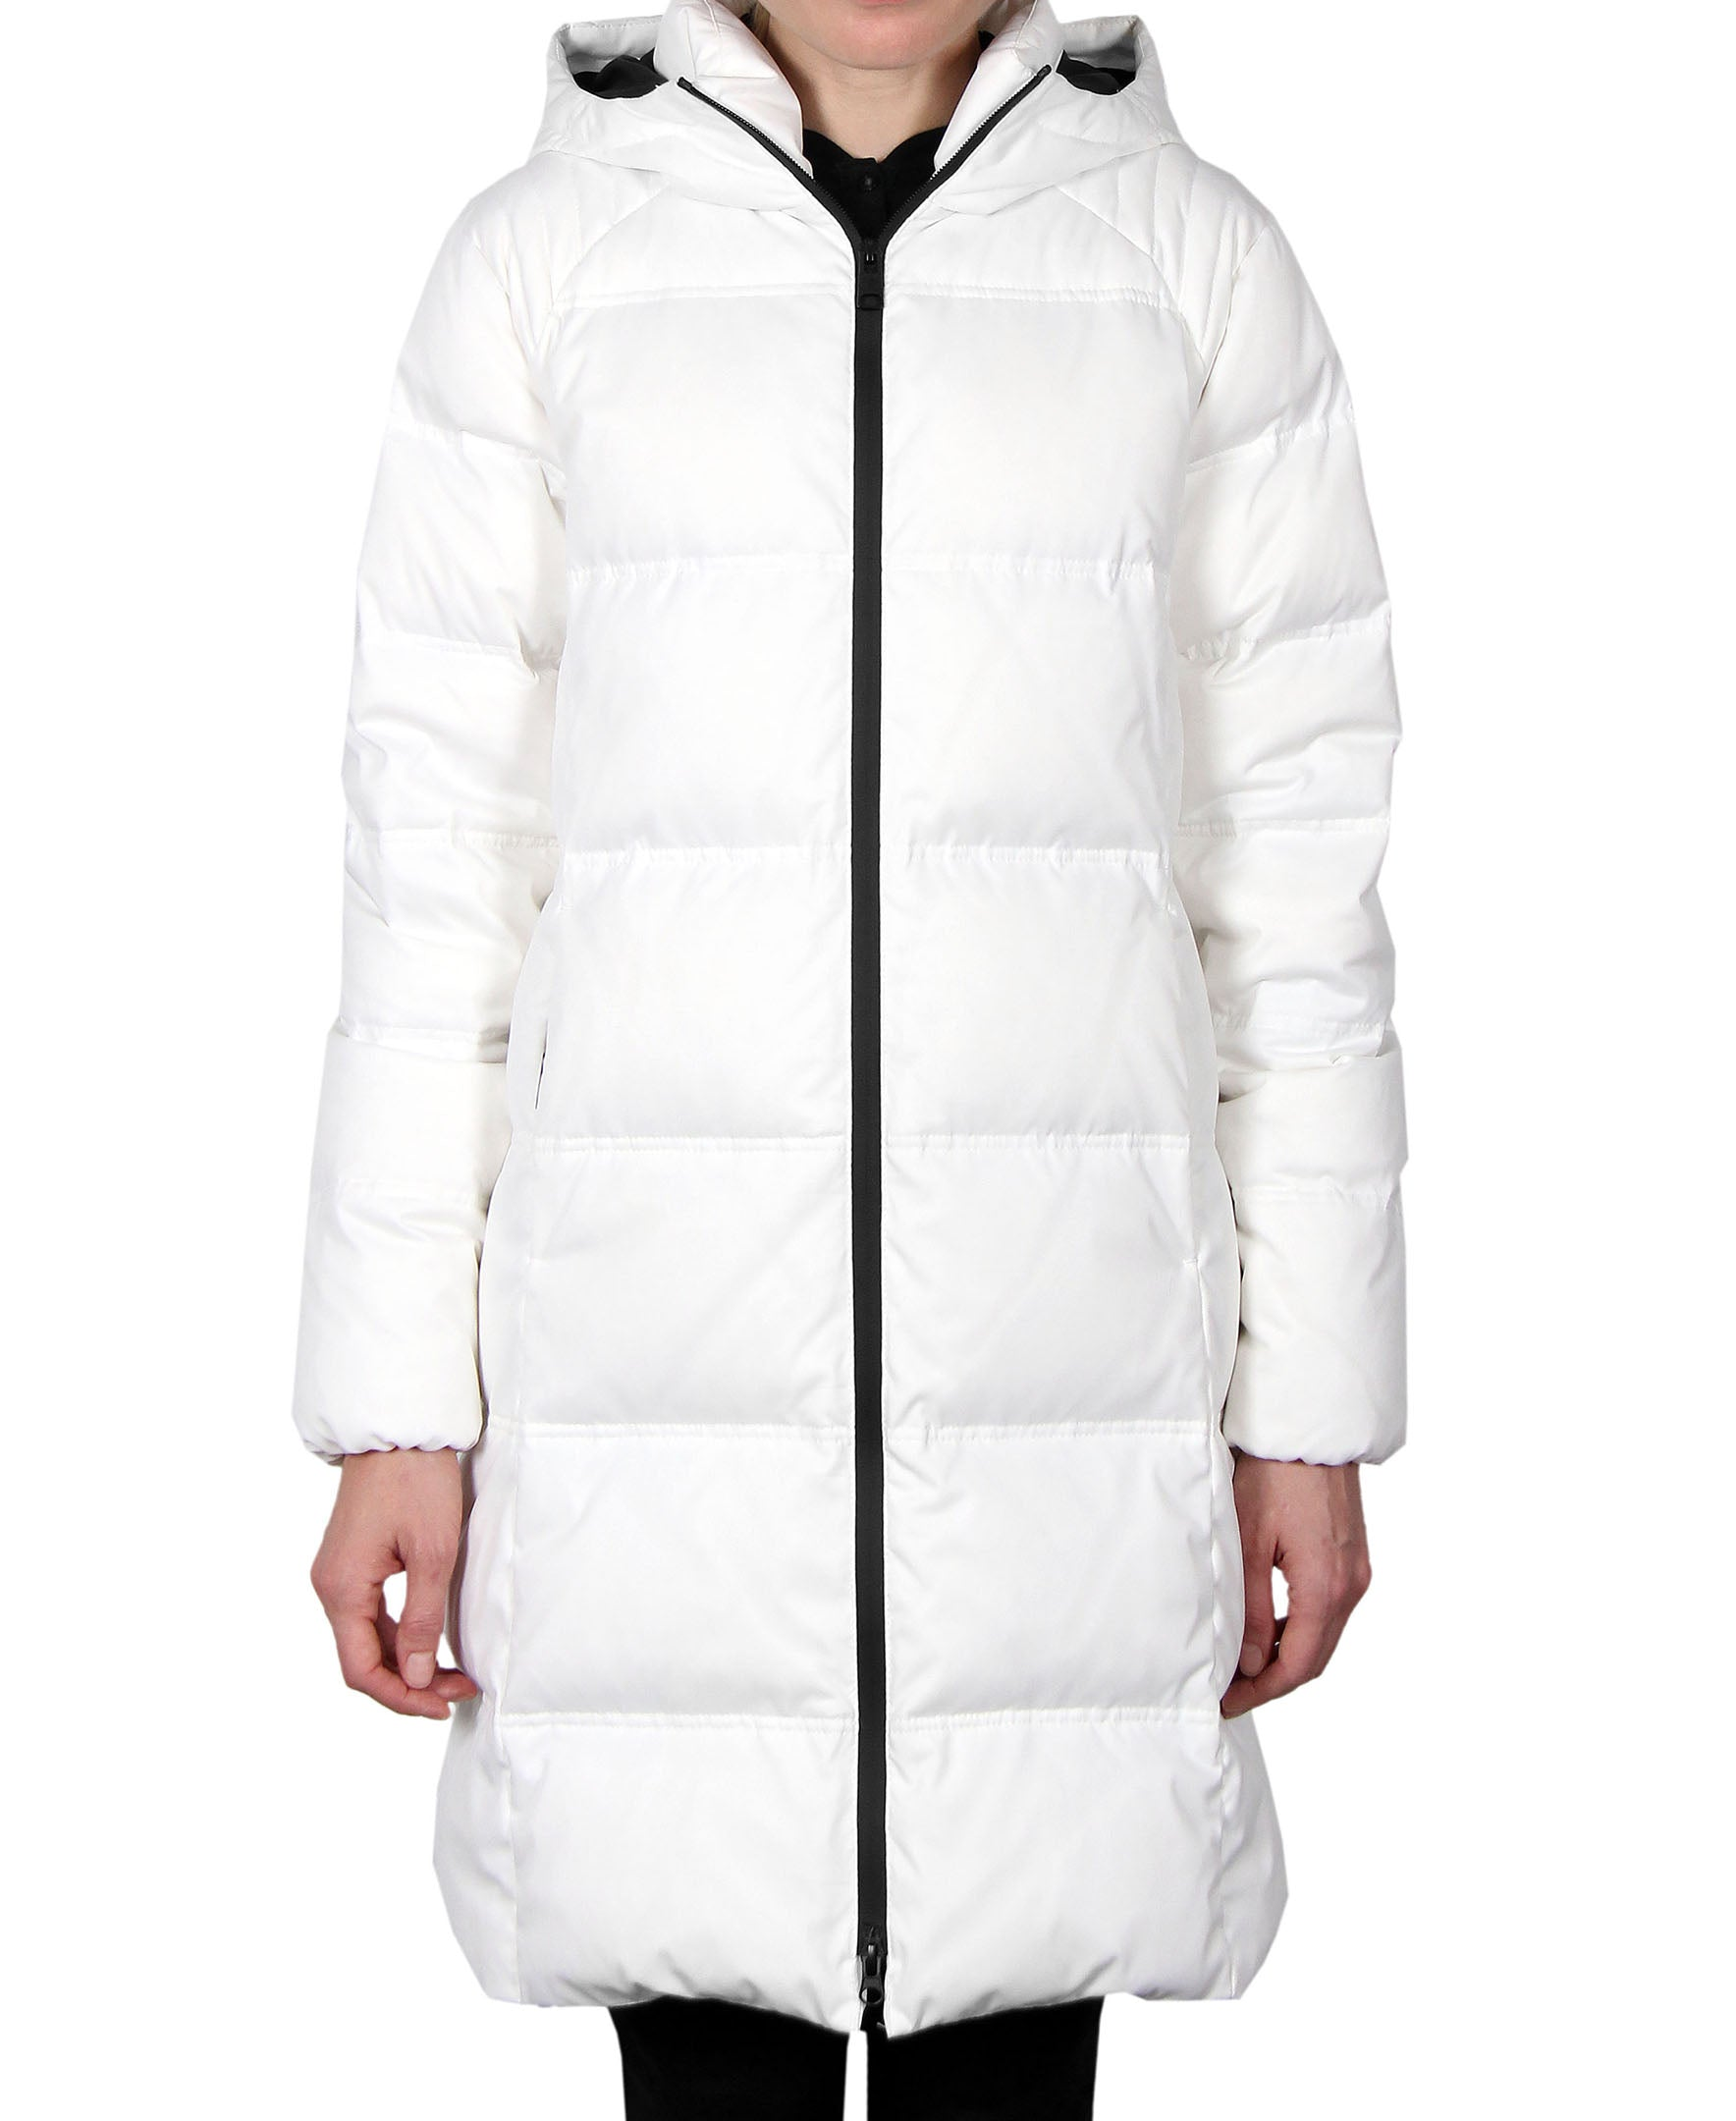 Women's Storm Coat - White -